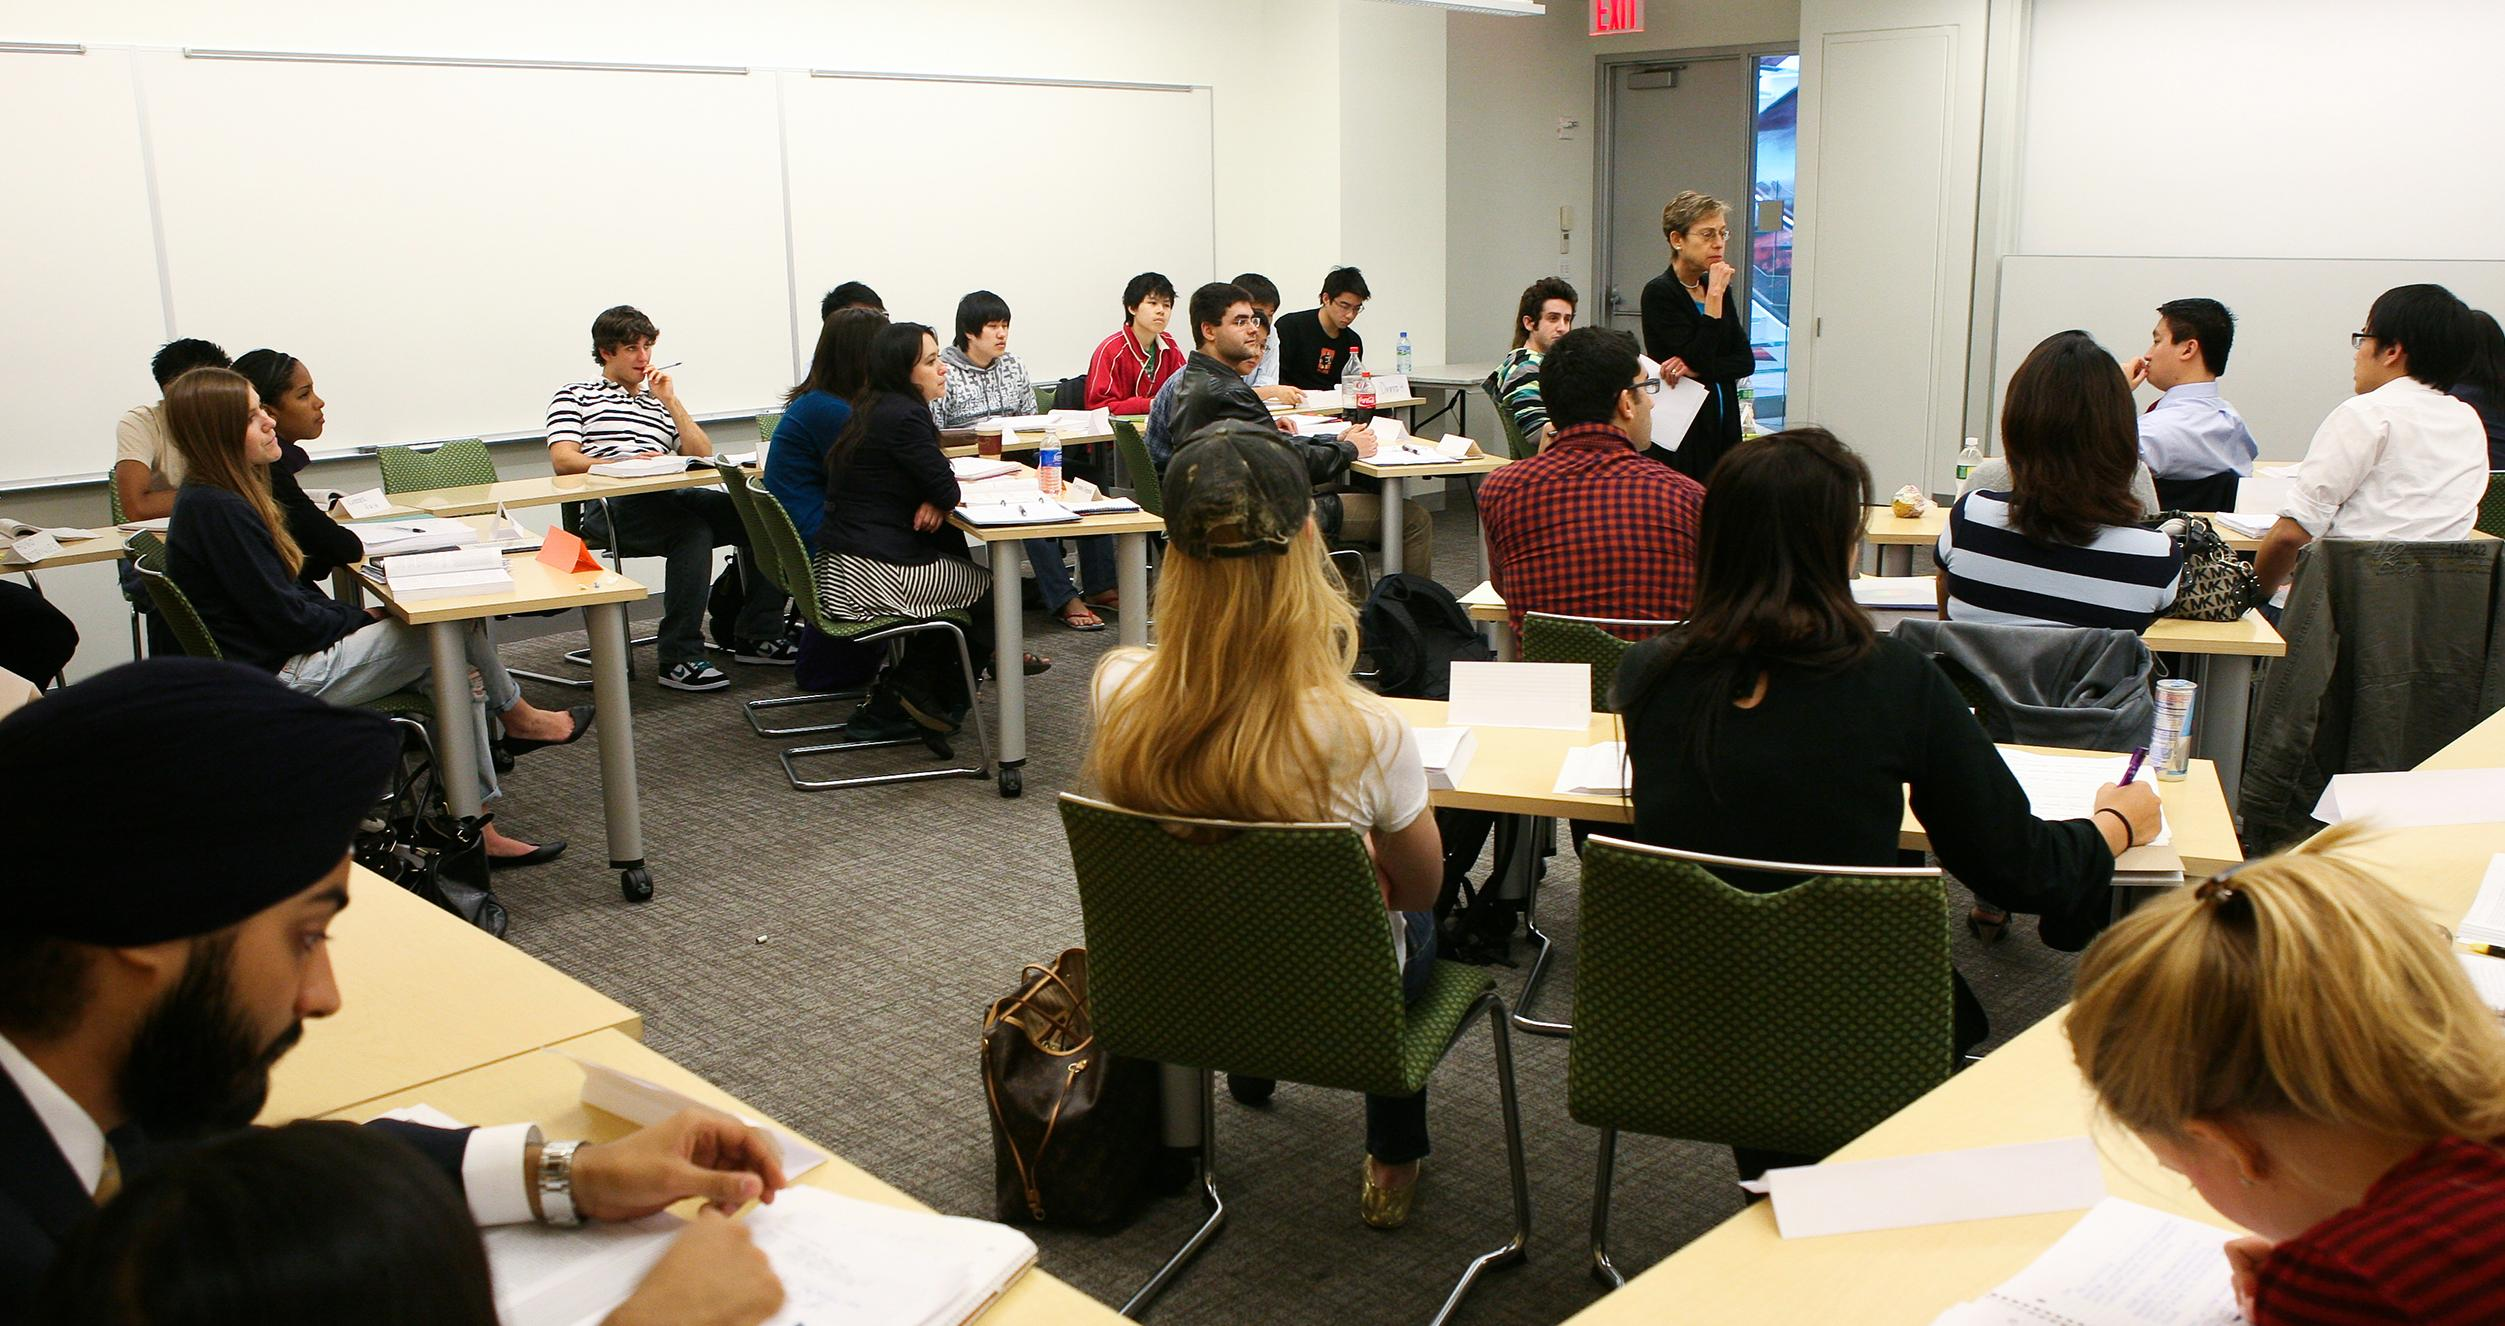 An NYU Stern professor teaches a small classroom of business students